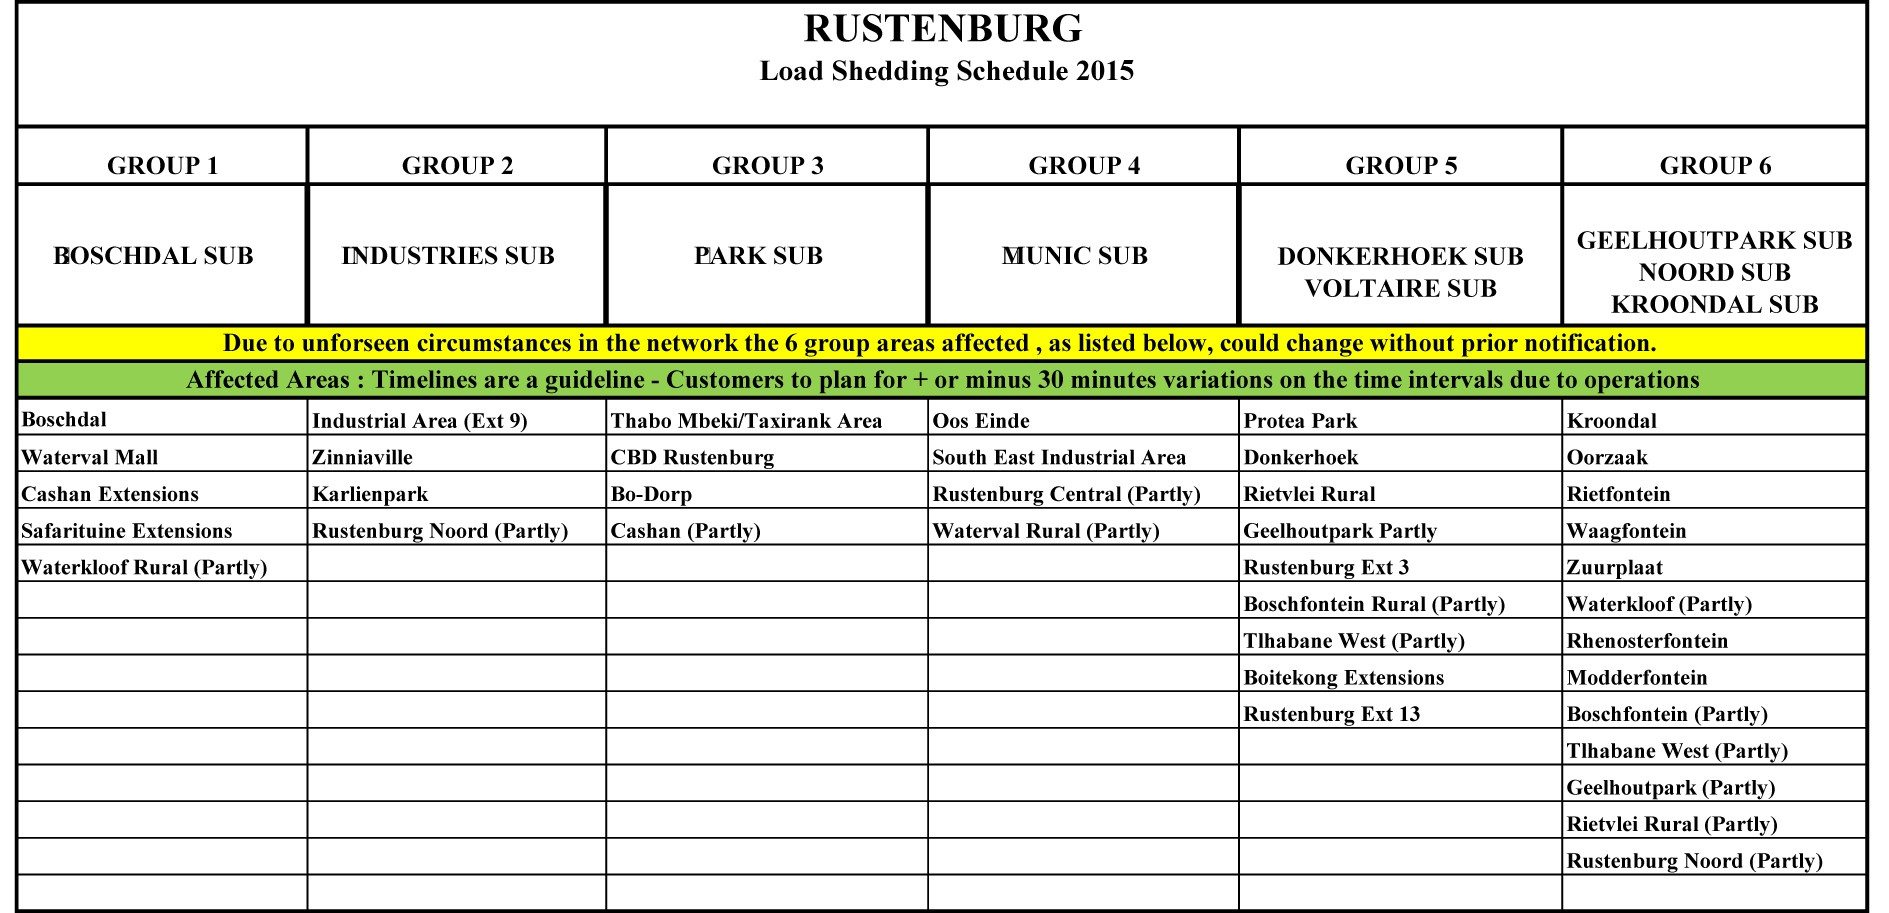 Loadshedding Cape Town: Load Shedding Schedule For Rustenburg